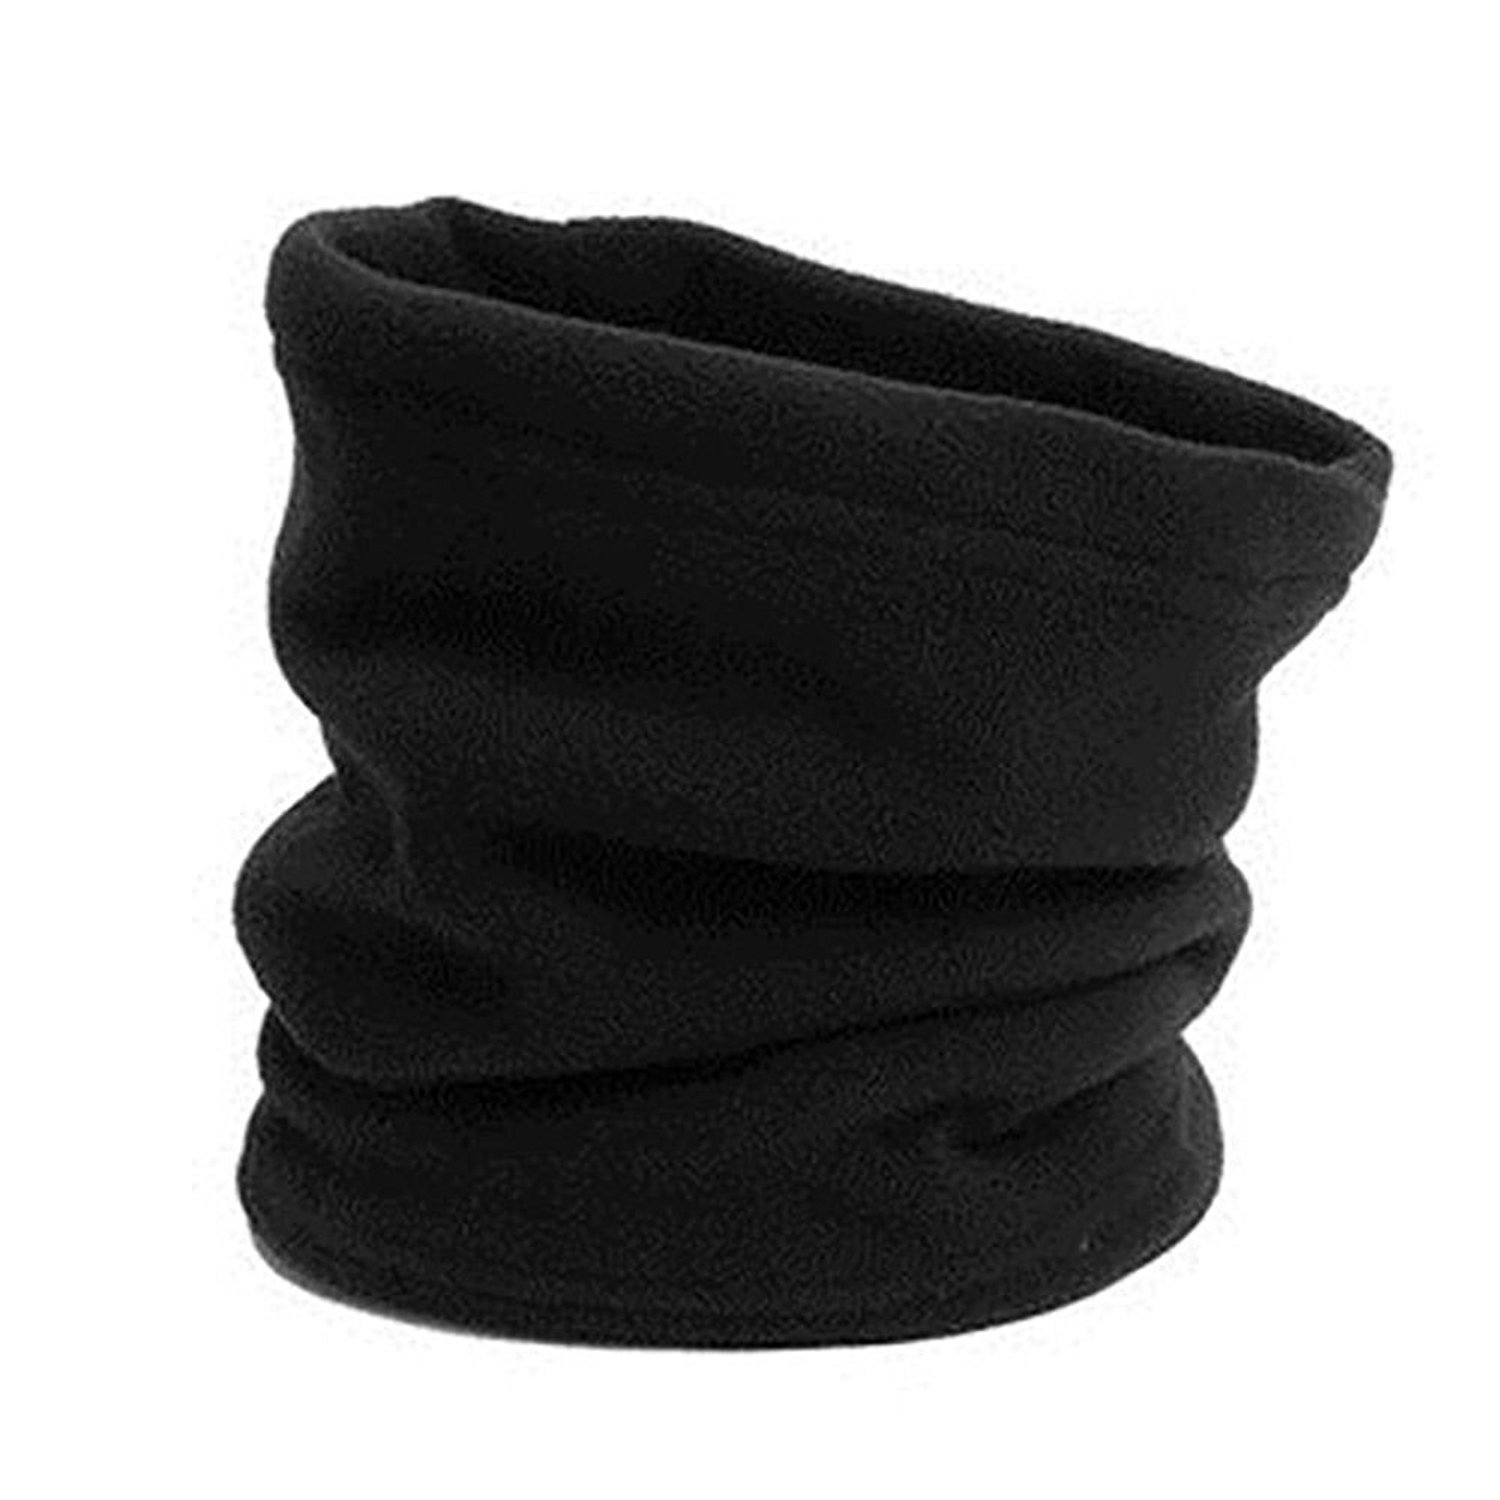 Fleece Neck Warmer Face Mask for Cold Weather Ski Mask Face Shield Headgear Balaclava for Warmth Outdoors, One Size Fits All (Black)